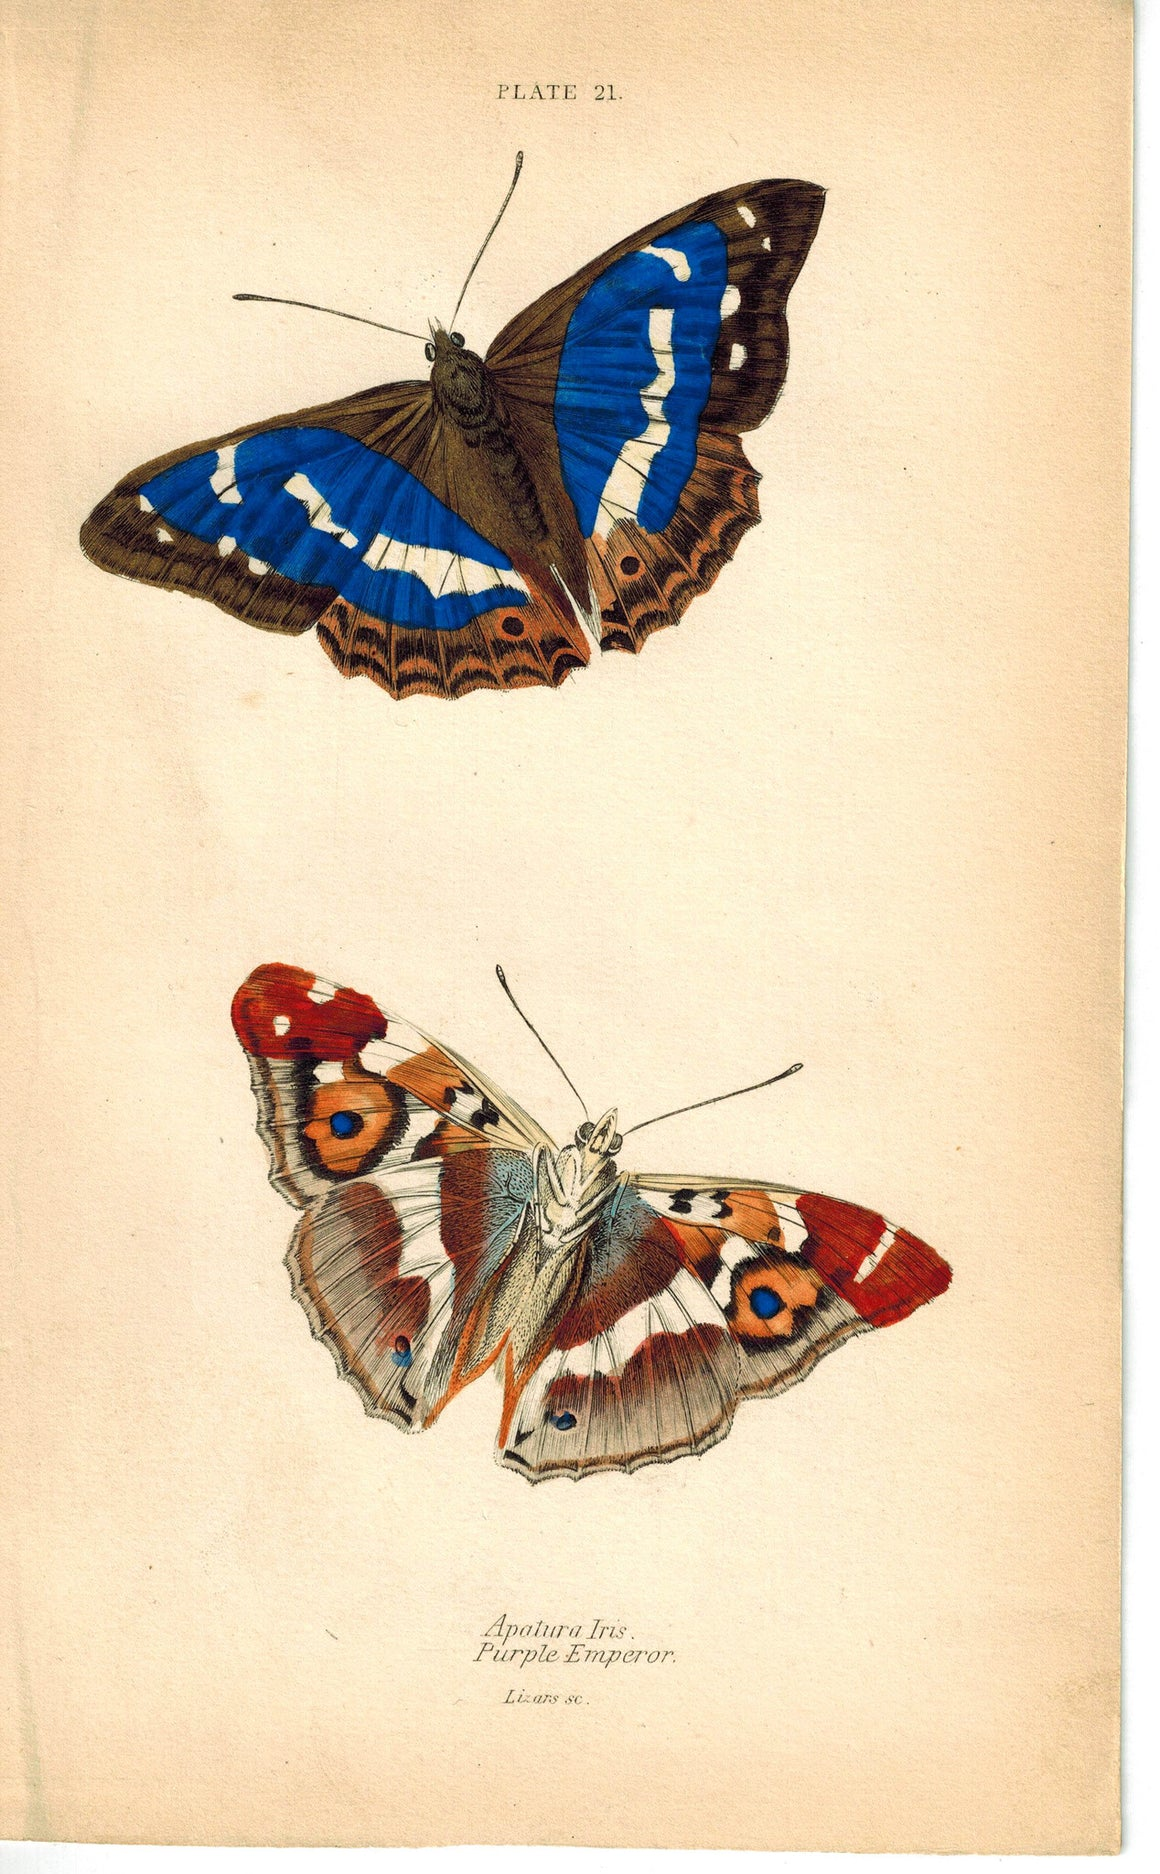 Purple Emperor Apaturo Iris Butterfly 1835 Hand Colored Jardine Duncan Print